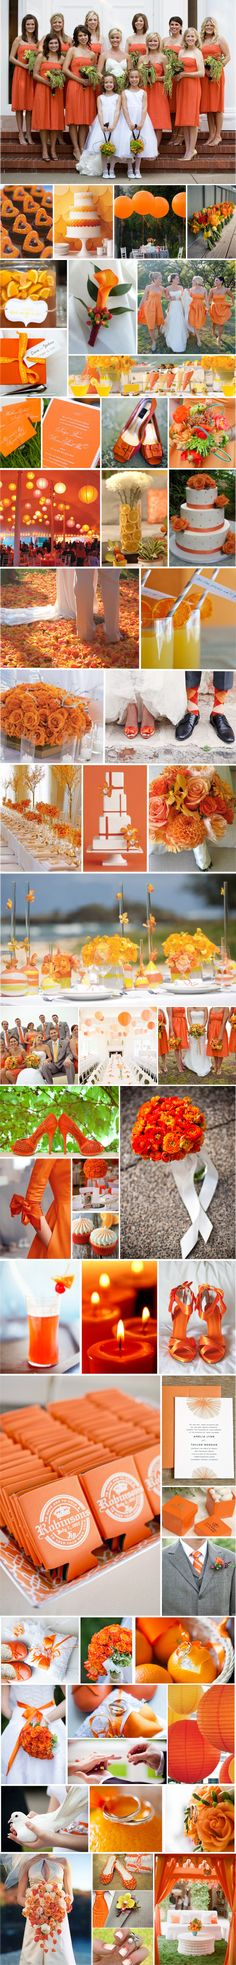 Wedding Cakes Blue Orange Bridesmaid Dresses 33 Ideas For 2019 Orange Wedding Colors, Fall Wedding Colors, Wedding Color Schemes, Orange Weddings, Wedding Themes, Wedding Decorations, Wedding Cakes, Wedding Ideas, Rustic Wedding